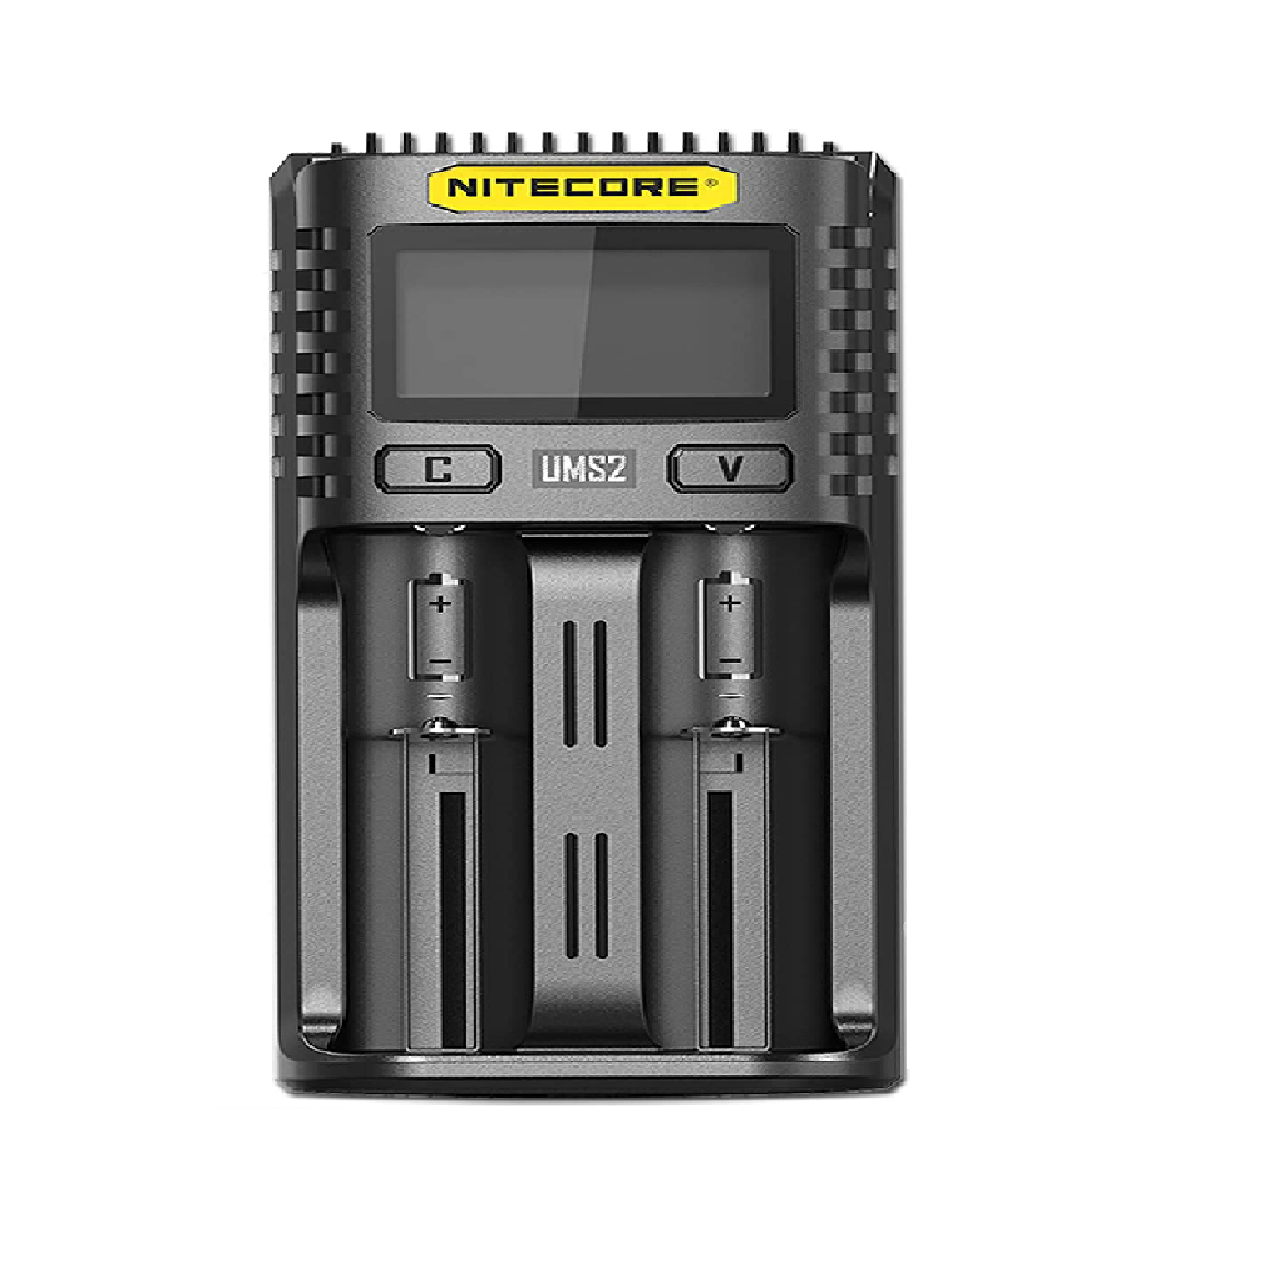 NITECORE UMS2 Dual-Slot USB Fast Charger, for 18650, 21700 batteries